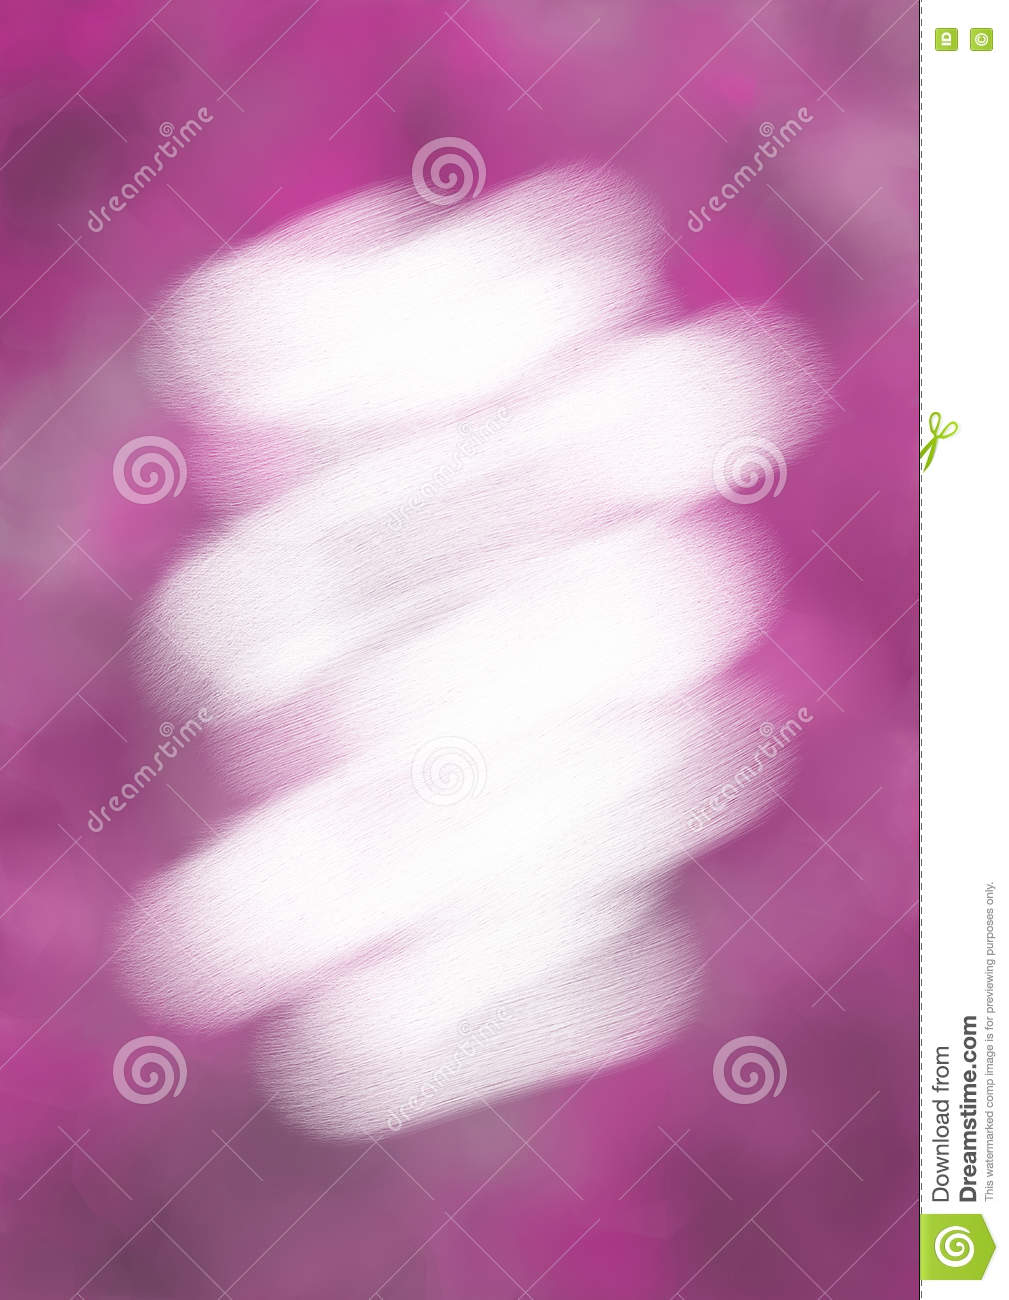 Pastel Drawn Background With Brushstrokes In Violet Colors.T Stock ...